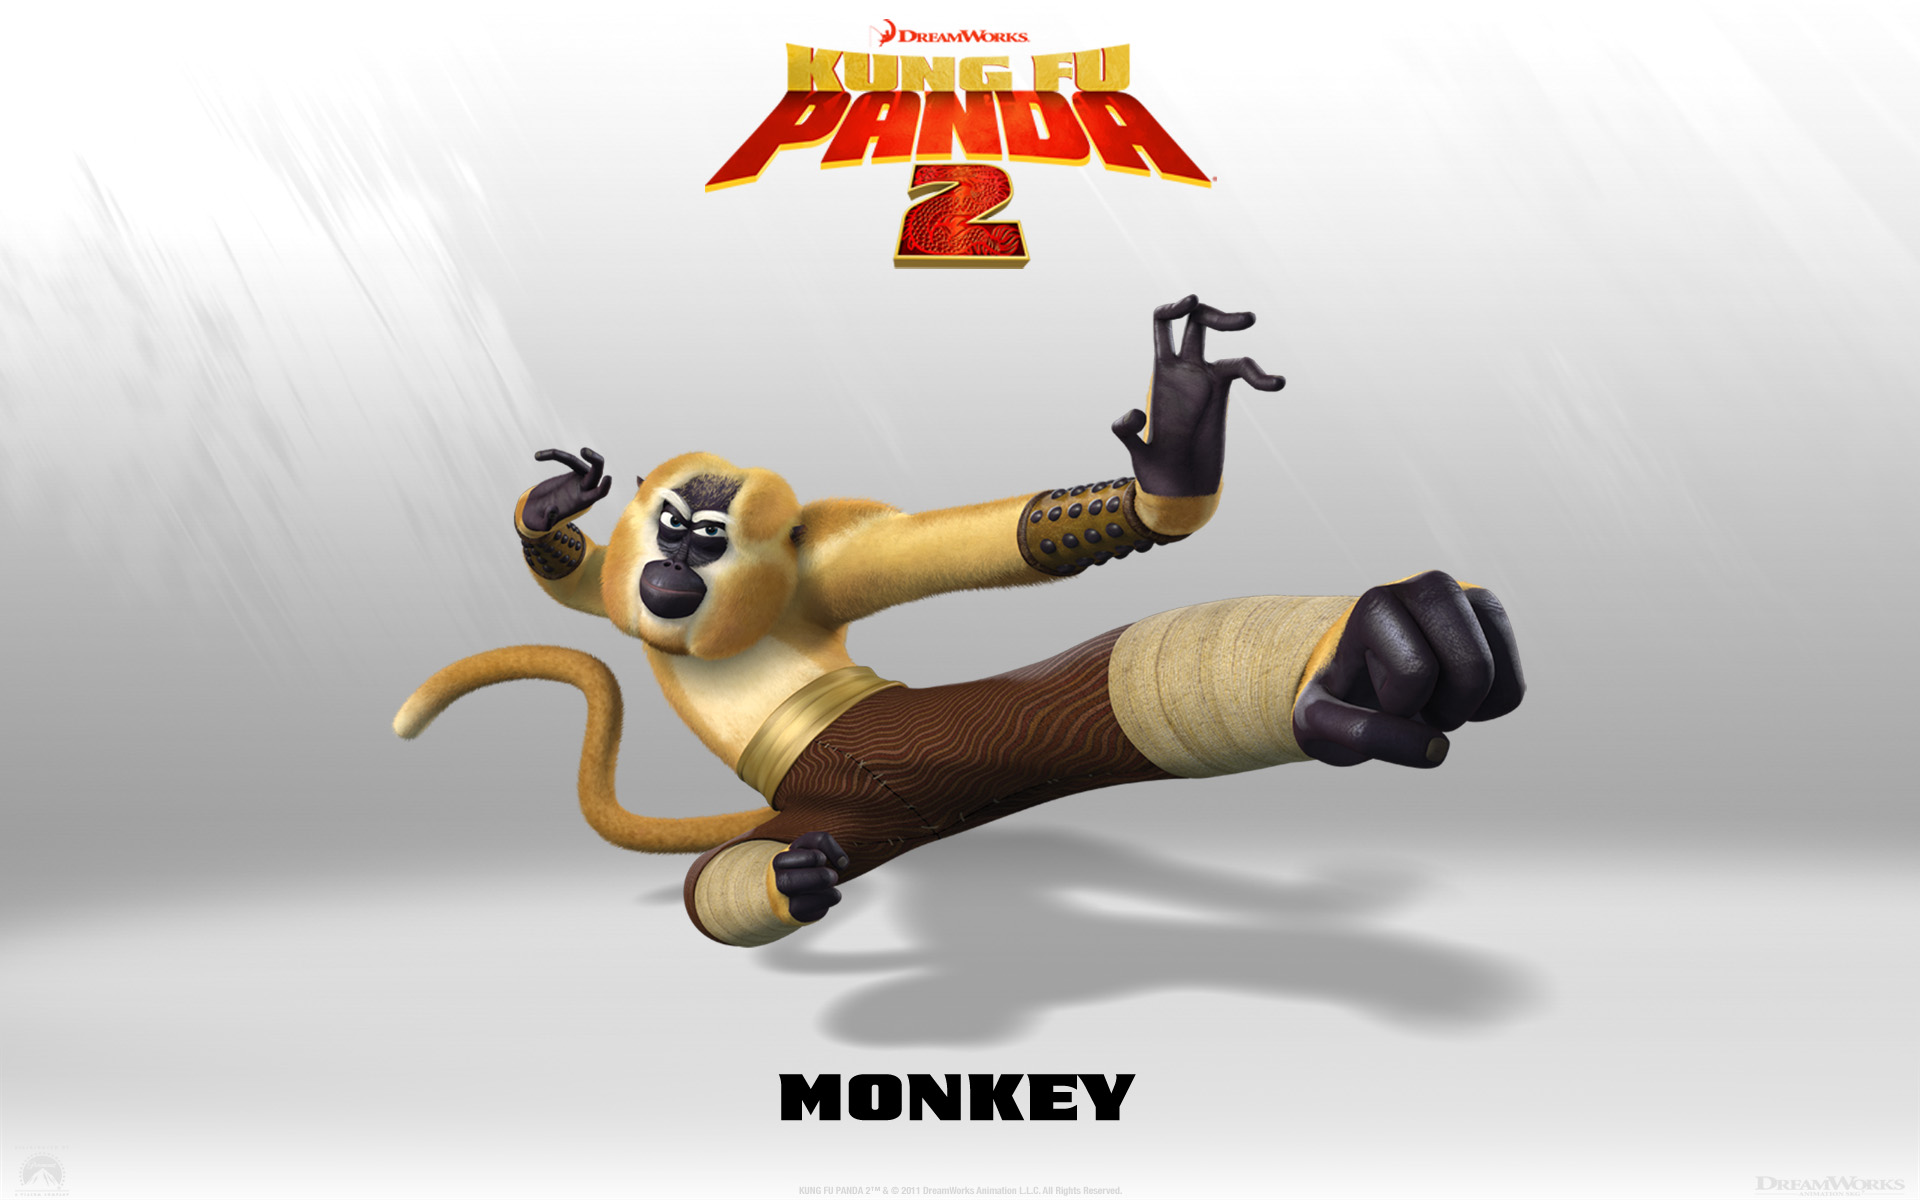 Kung fu panda iphone wallpaper - Monkey From Kung Fu Panda 2 Dreamworks Cg Animated Movie Wallpaper